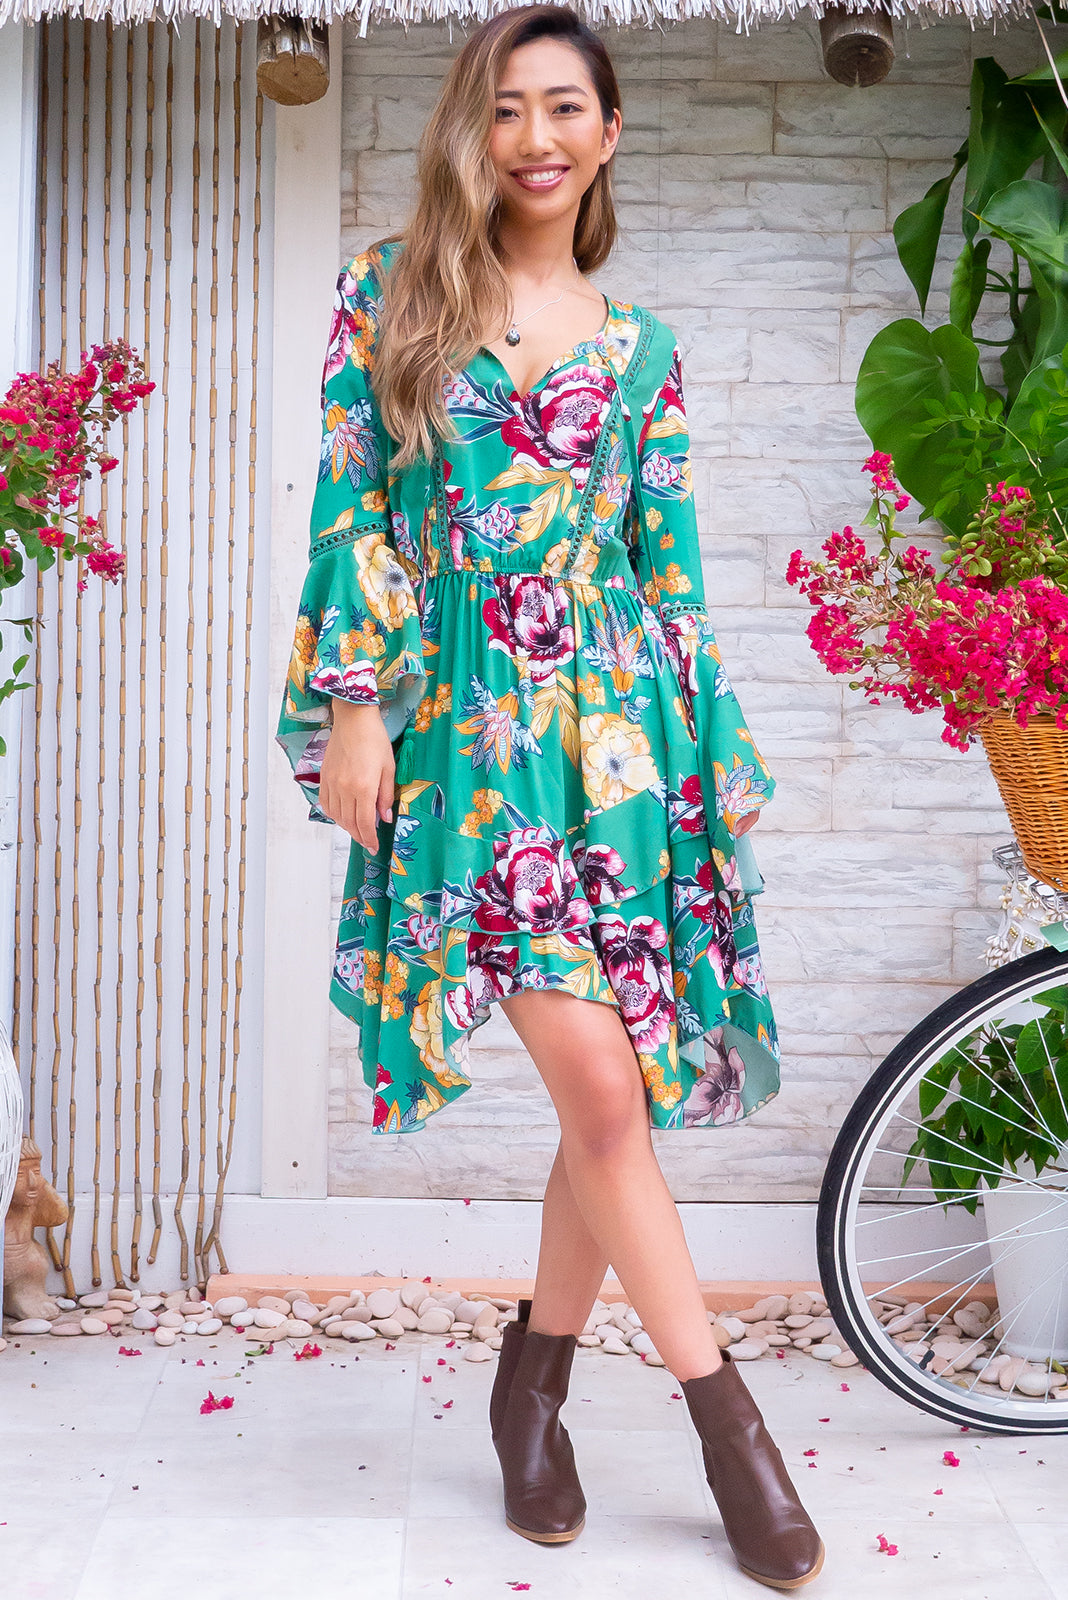 The Dozi Woodstock Green Dress is a super retro frock featuring tie up keyhole neckline, lace inserts in bust and sleeves, handkerchief hem bell sleeves, elasticated waist, handkerchief hem skirt, jade green base with graphic, colourful floral print in woven 100% rayon.